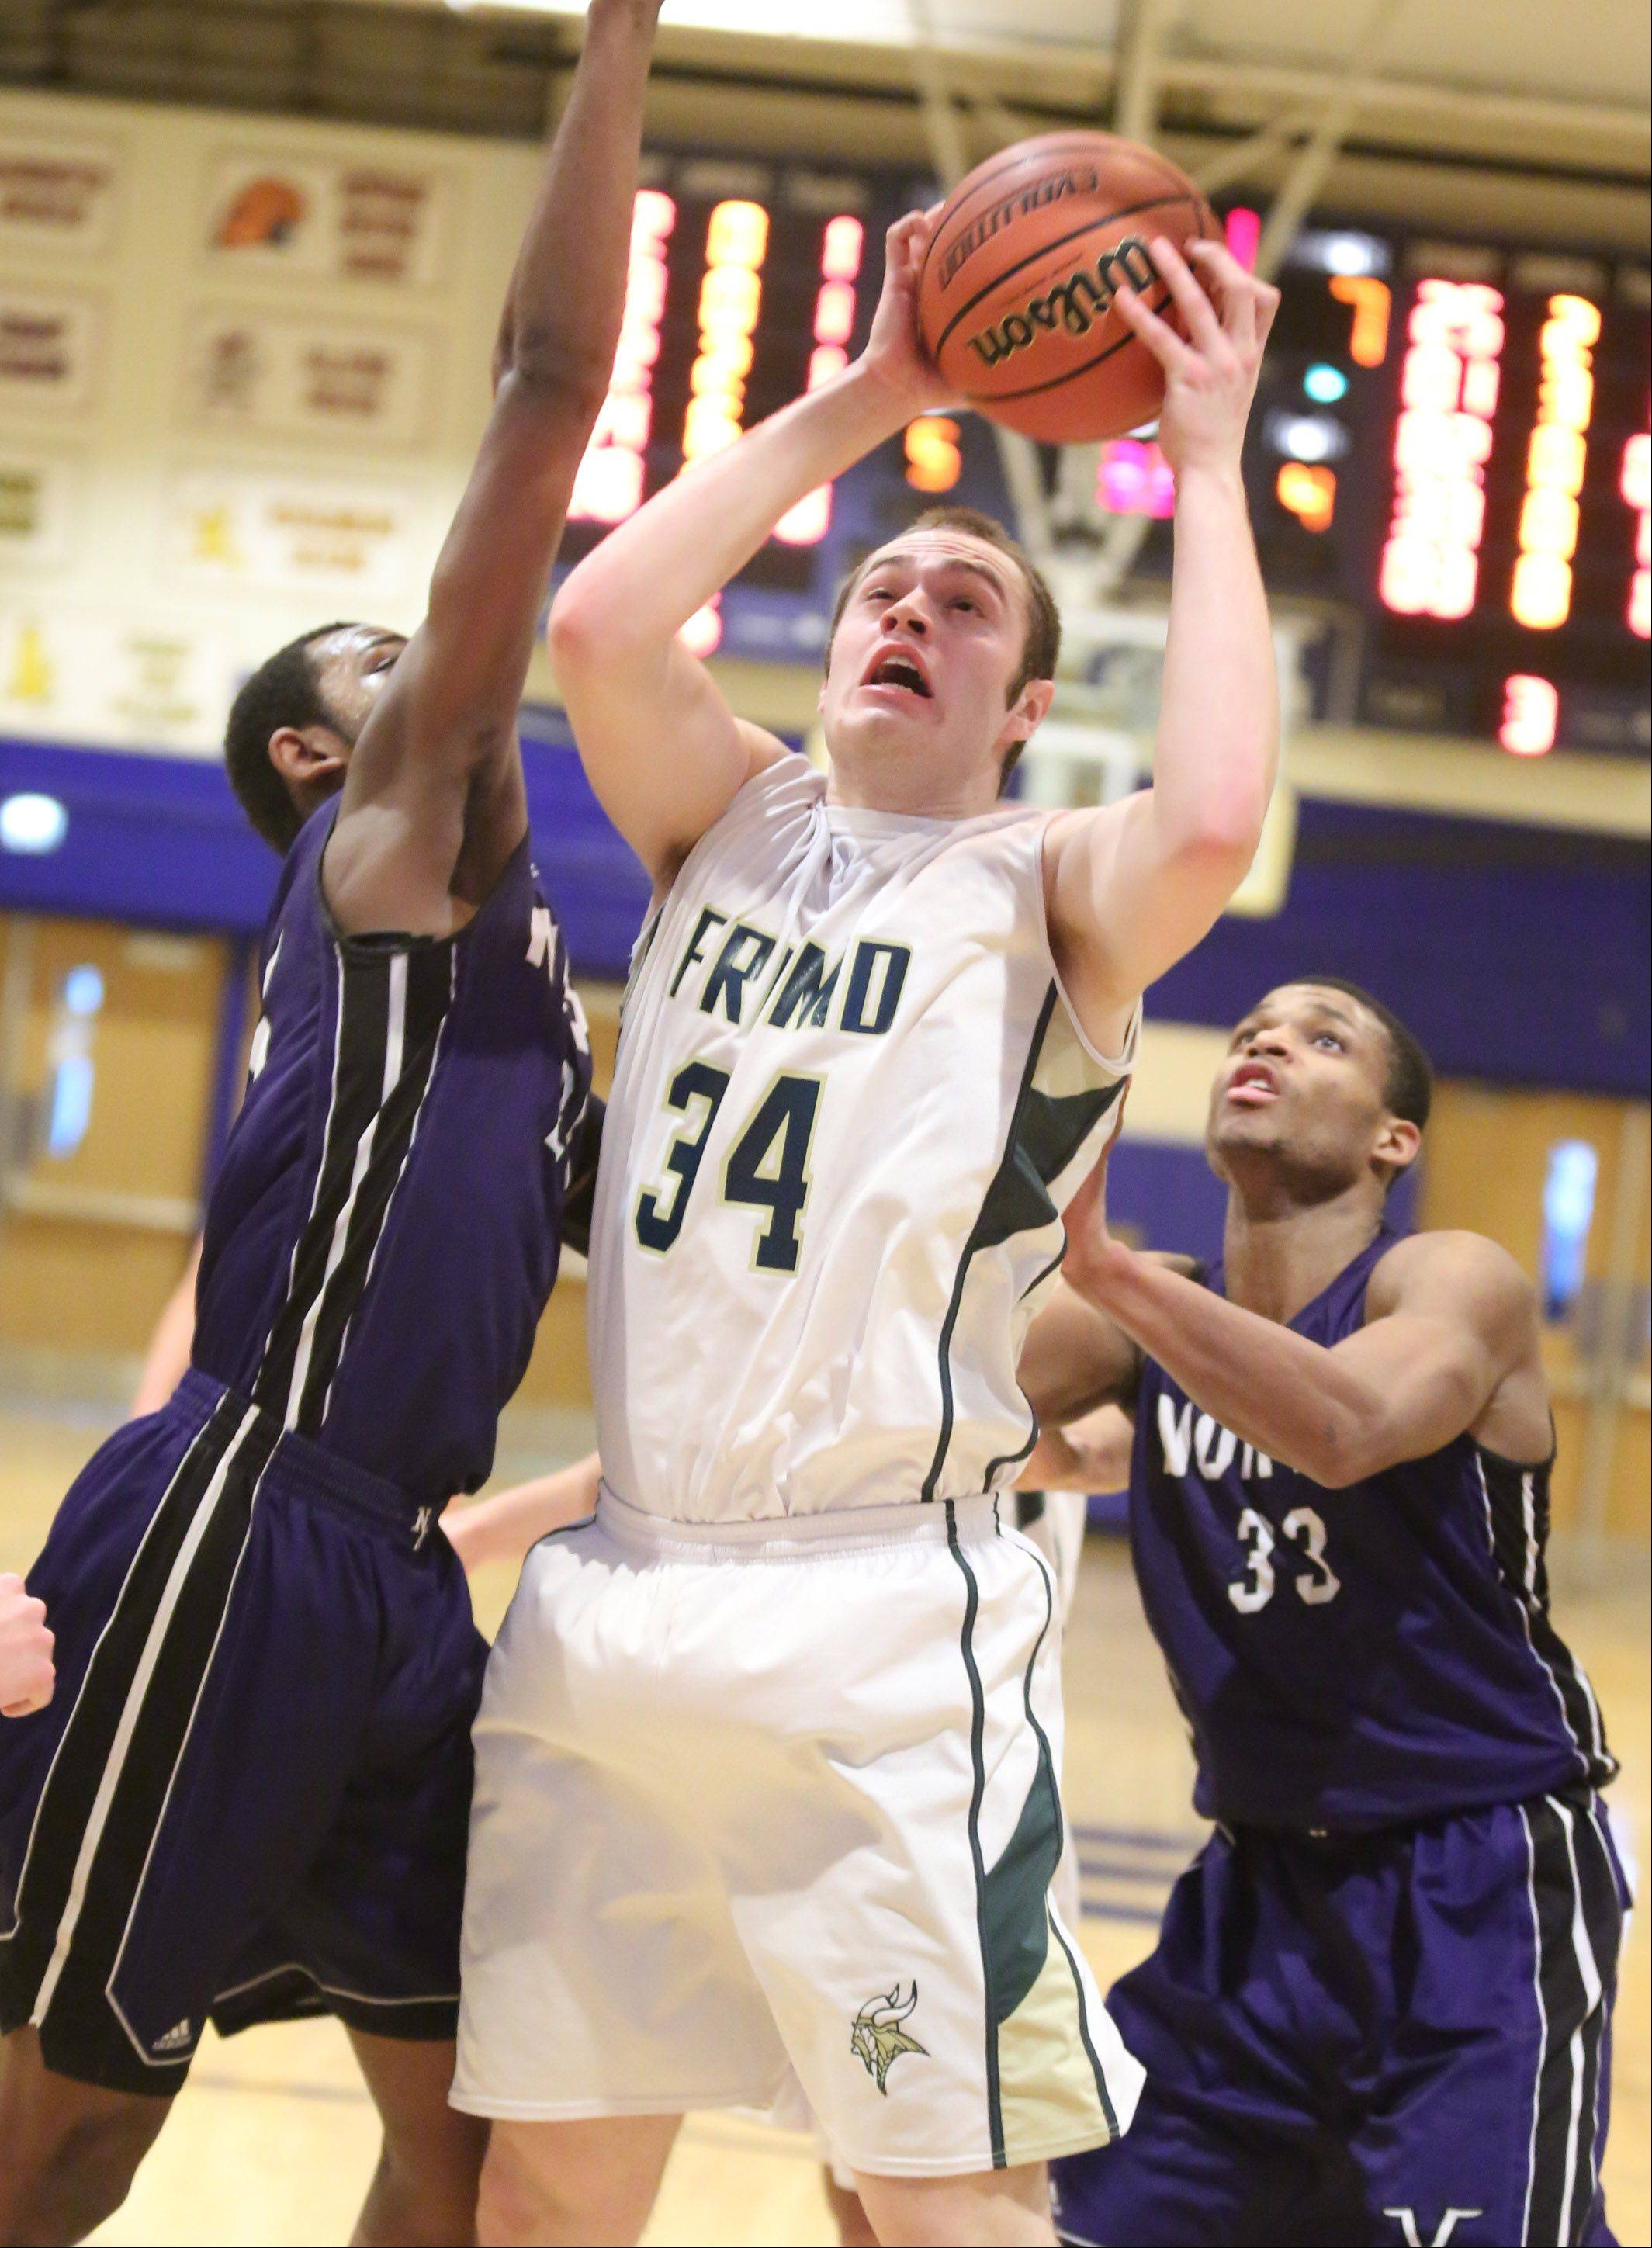 Fremd forward Benjamin Carlson pulls down an offensive rebound and shoots while splitting two Niles North defenders including Duante Stephens, right, on Thursday at the Wheeling Hardwood Classic.